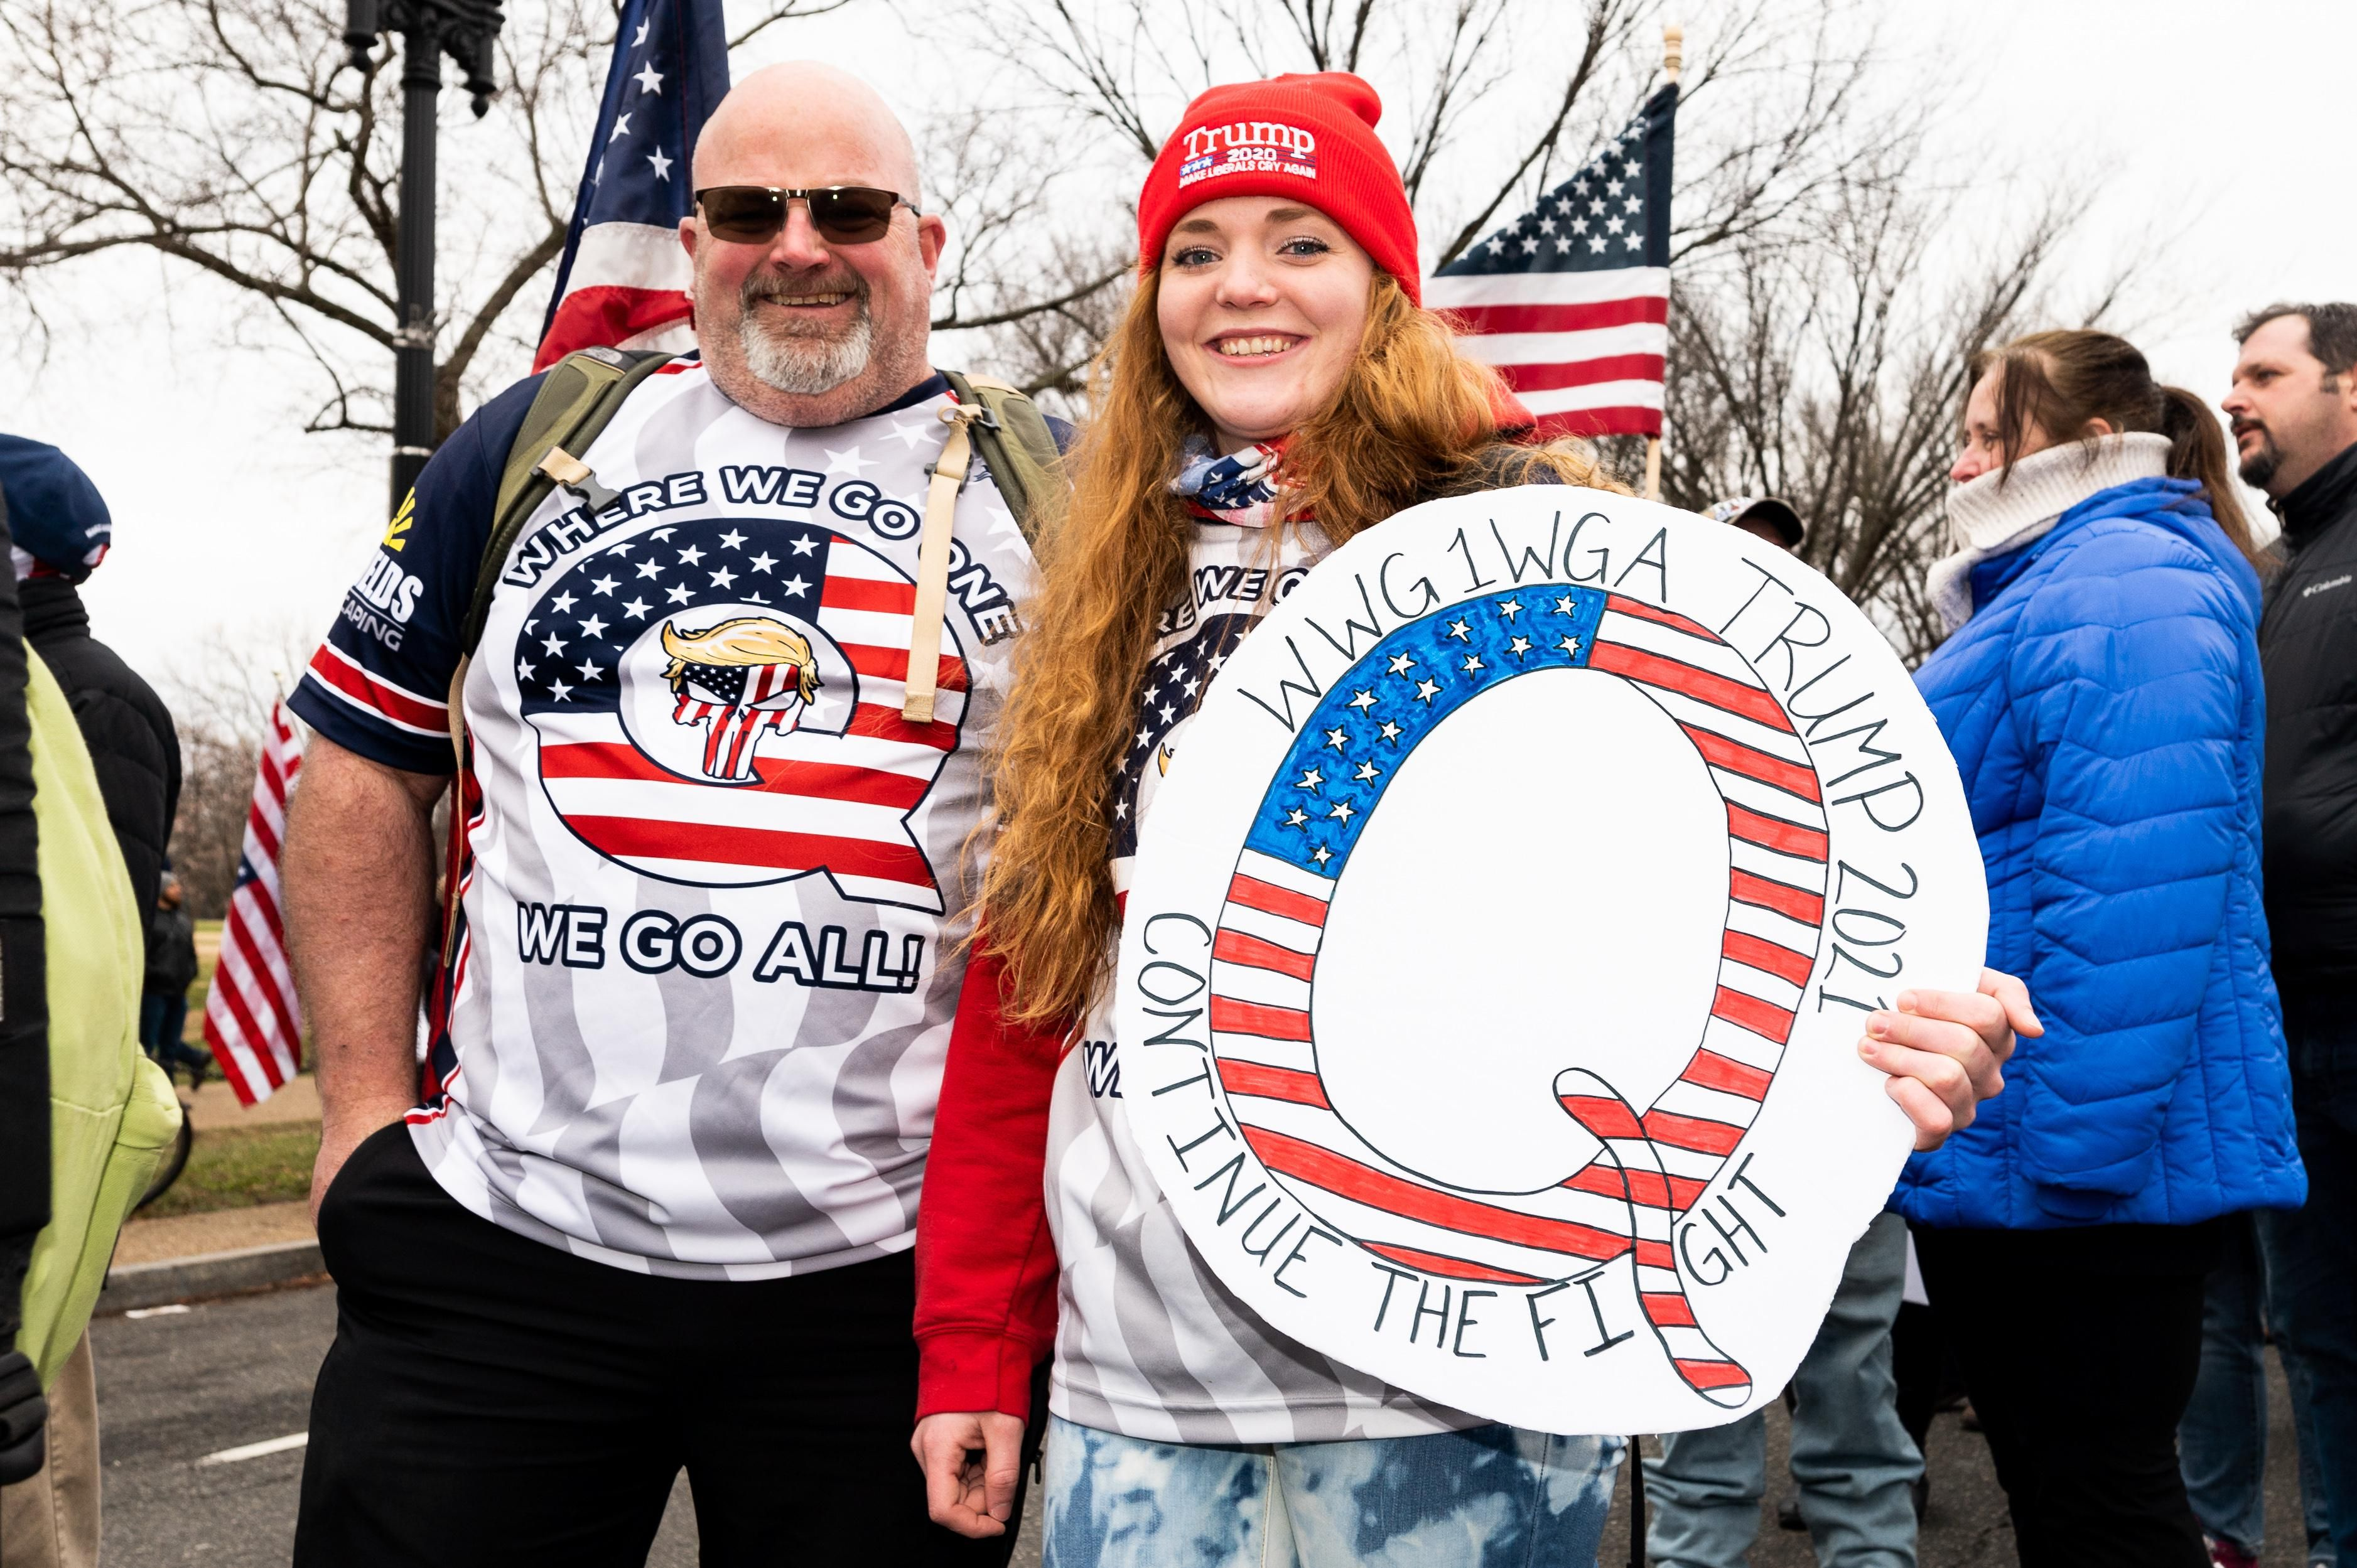 QAnon supporters attend a pro-Trump rally prior to the storming of the US Capitol building. Reuters